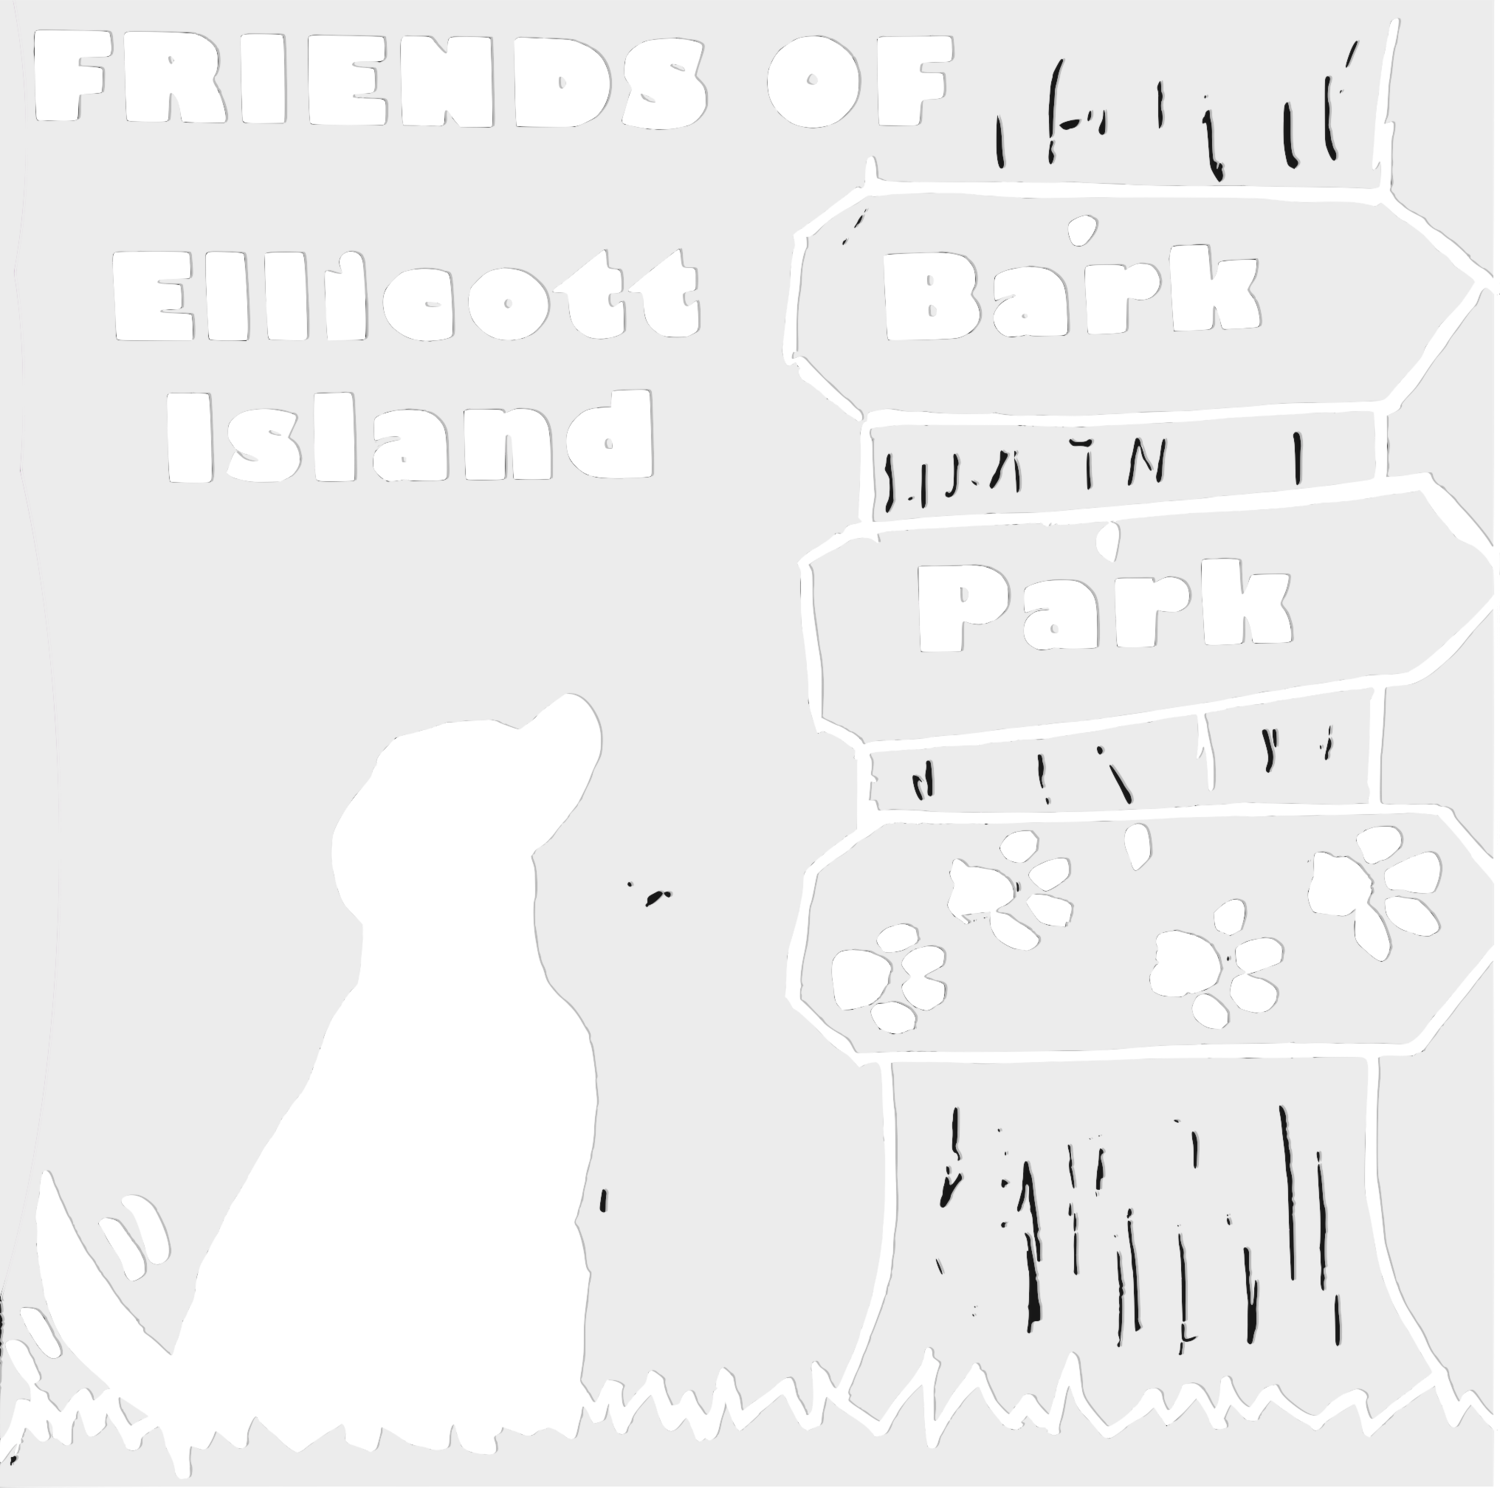 Friends of Ellicott